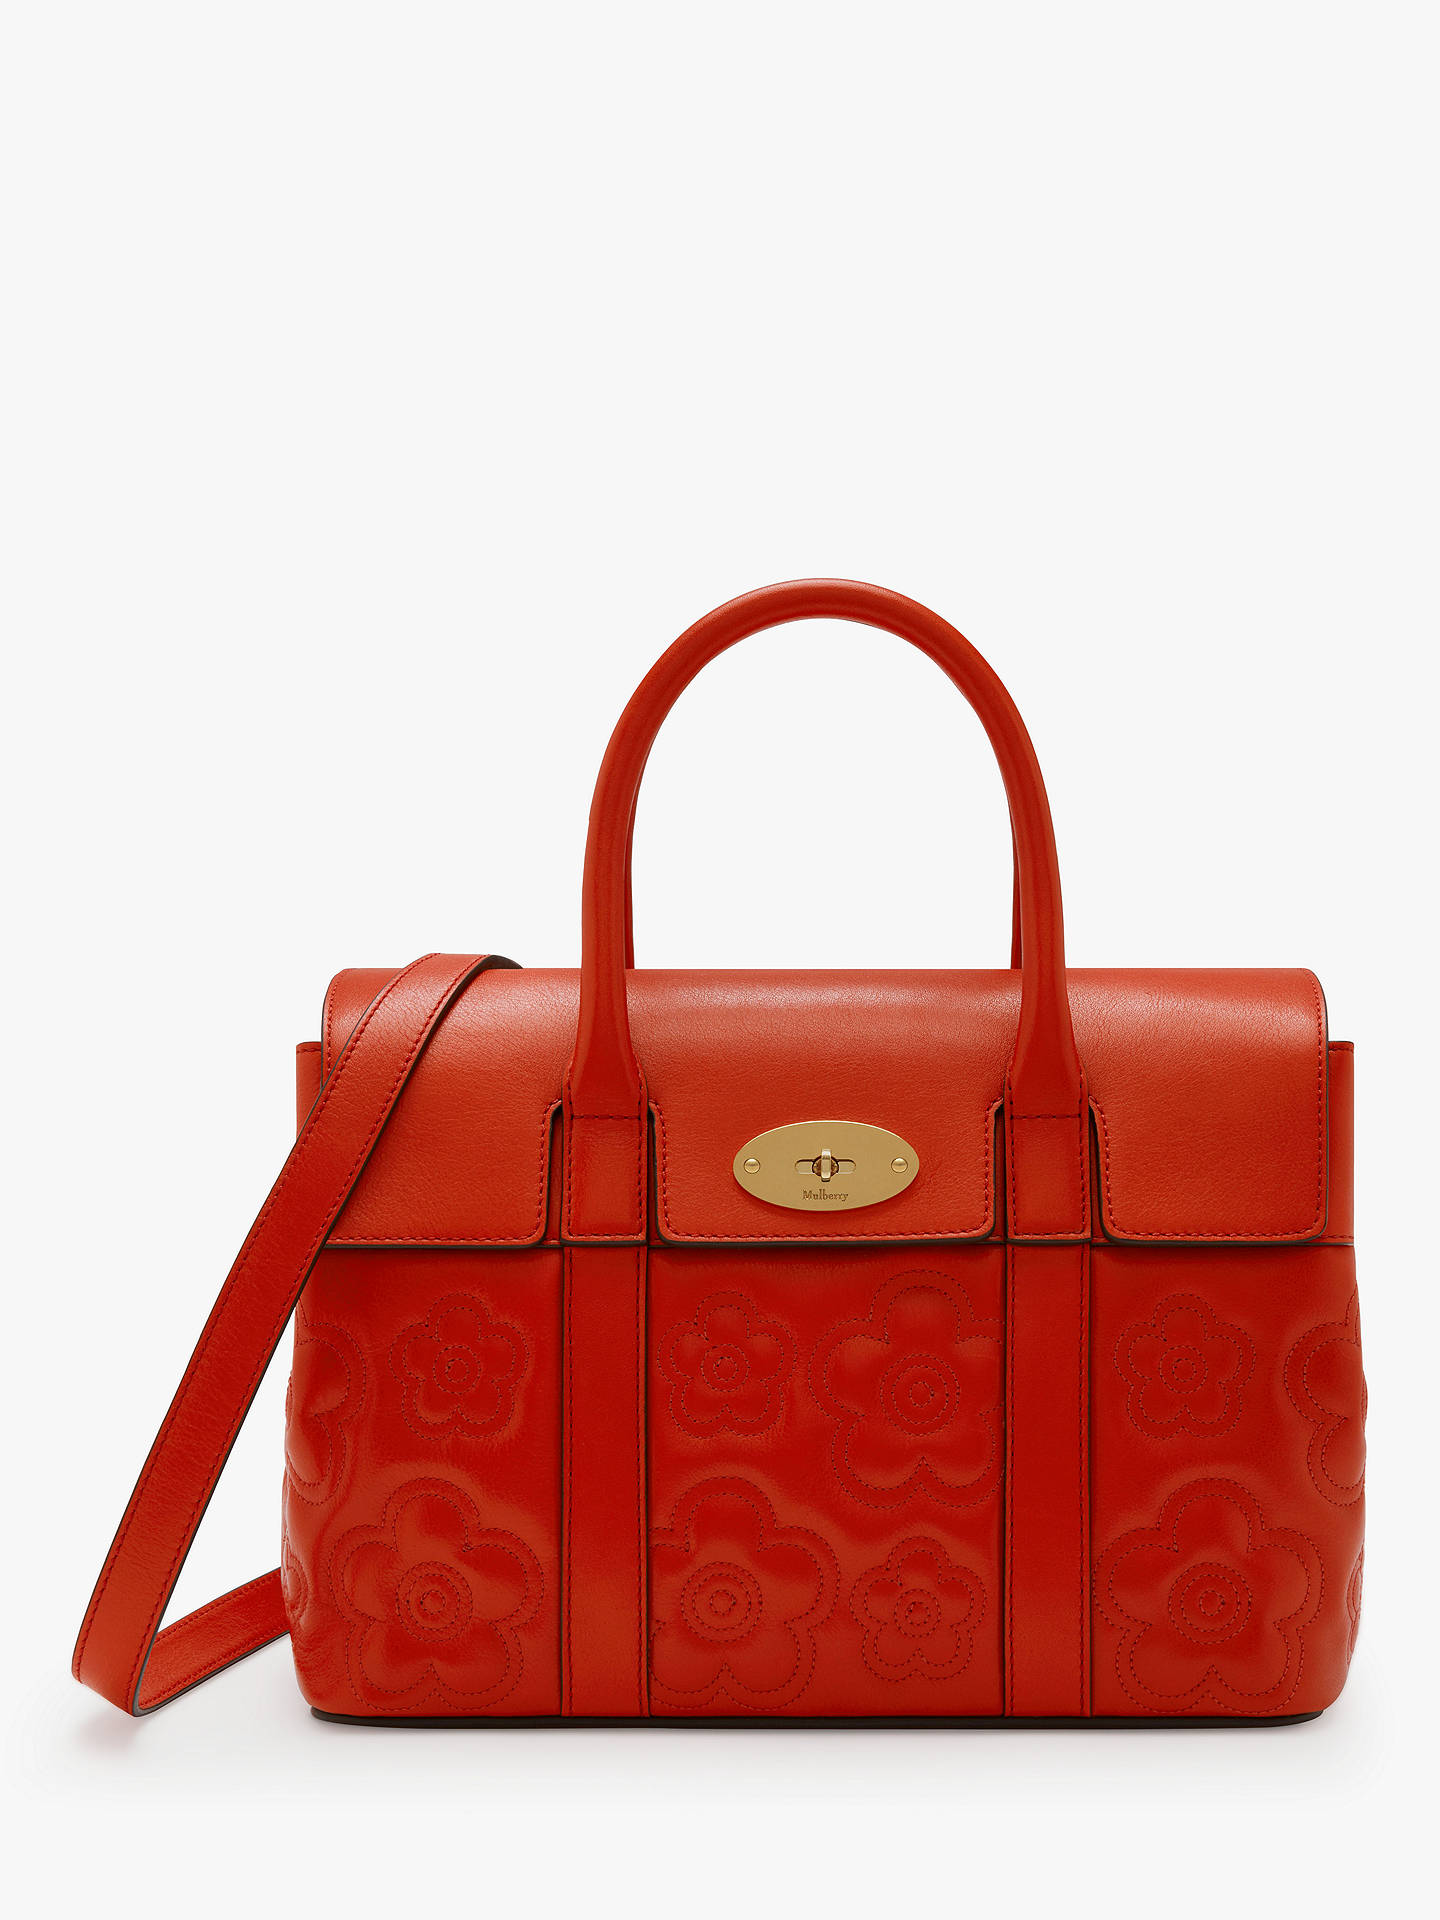 ea2ba549f6 Buy Mulberry Bayswater Silky Calf Leather Quilted Flower Small Tote Bag,  Hibiscus Red Online at ...